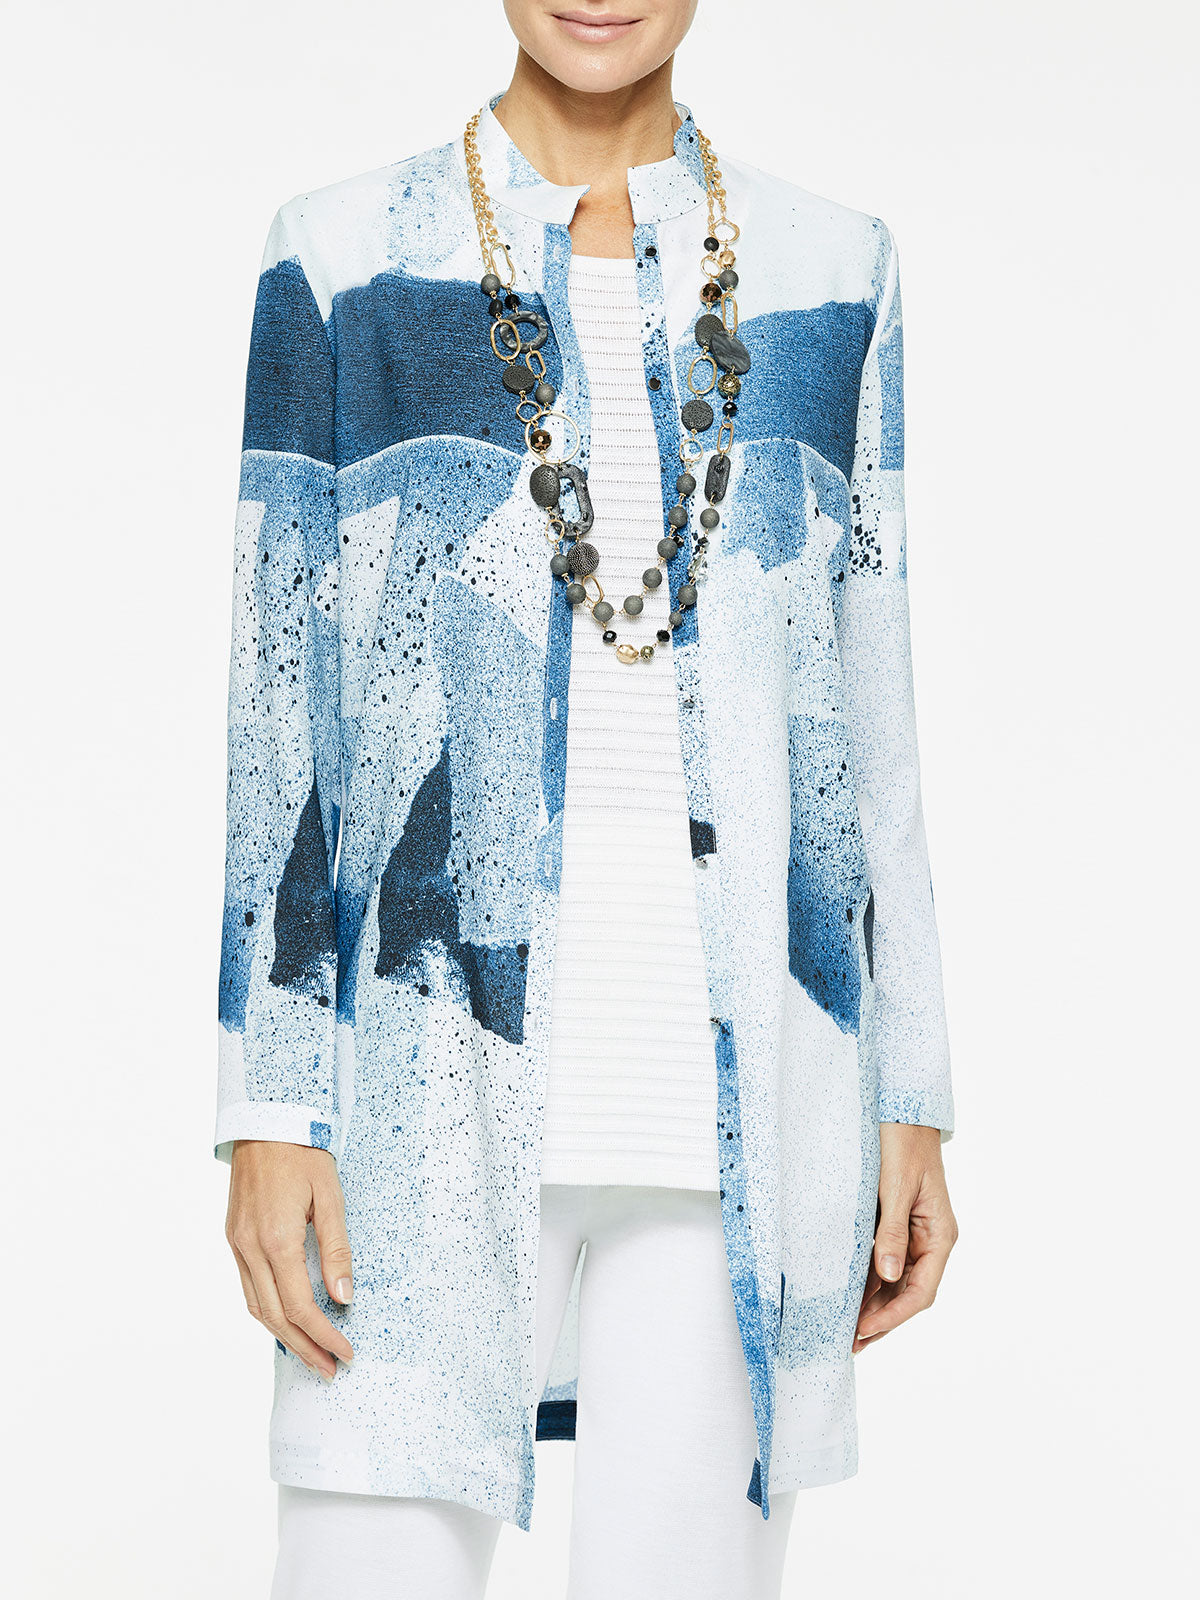 Abstract Pattern Crepe de Chine Blouse Color White/Harbor Blue/Aqua/Black